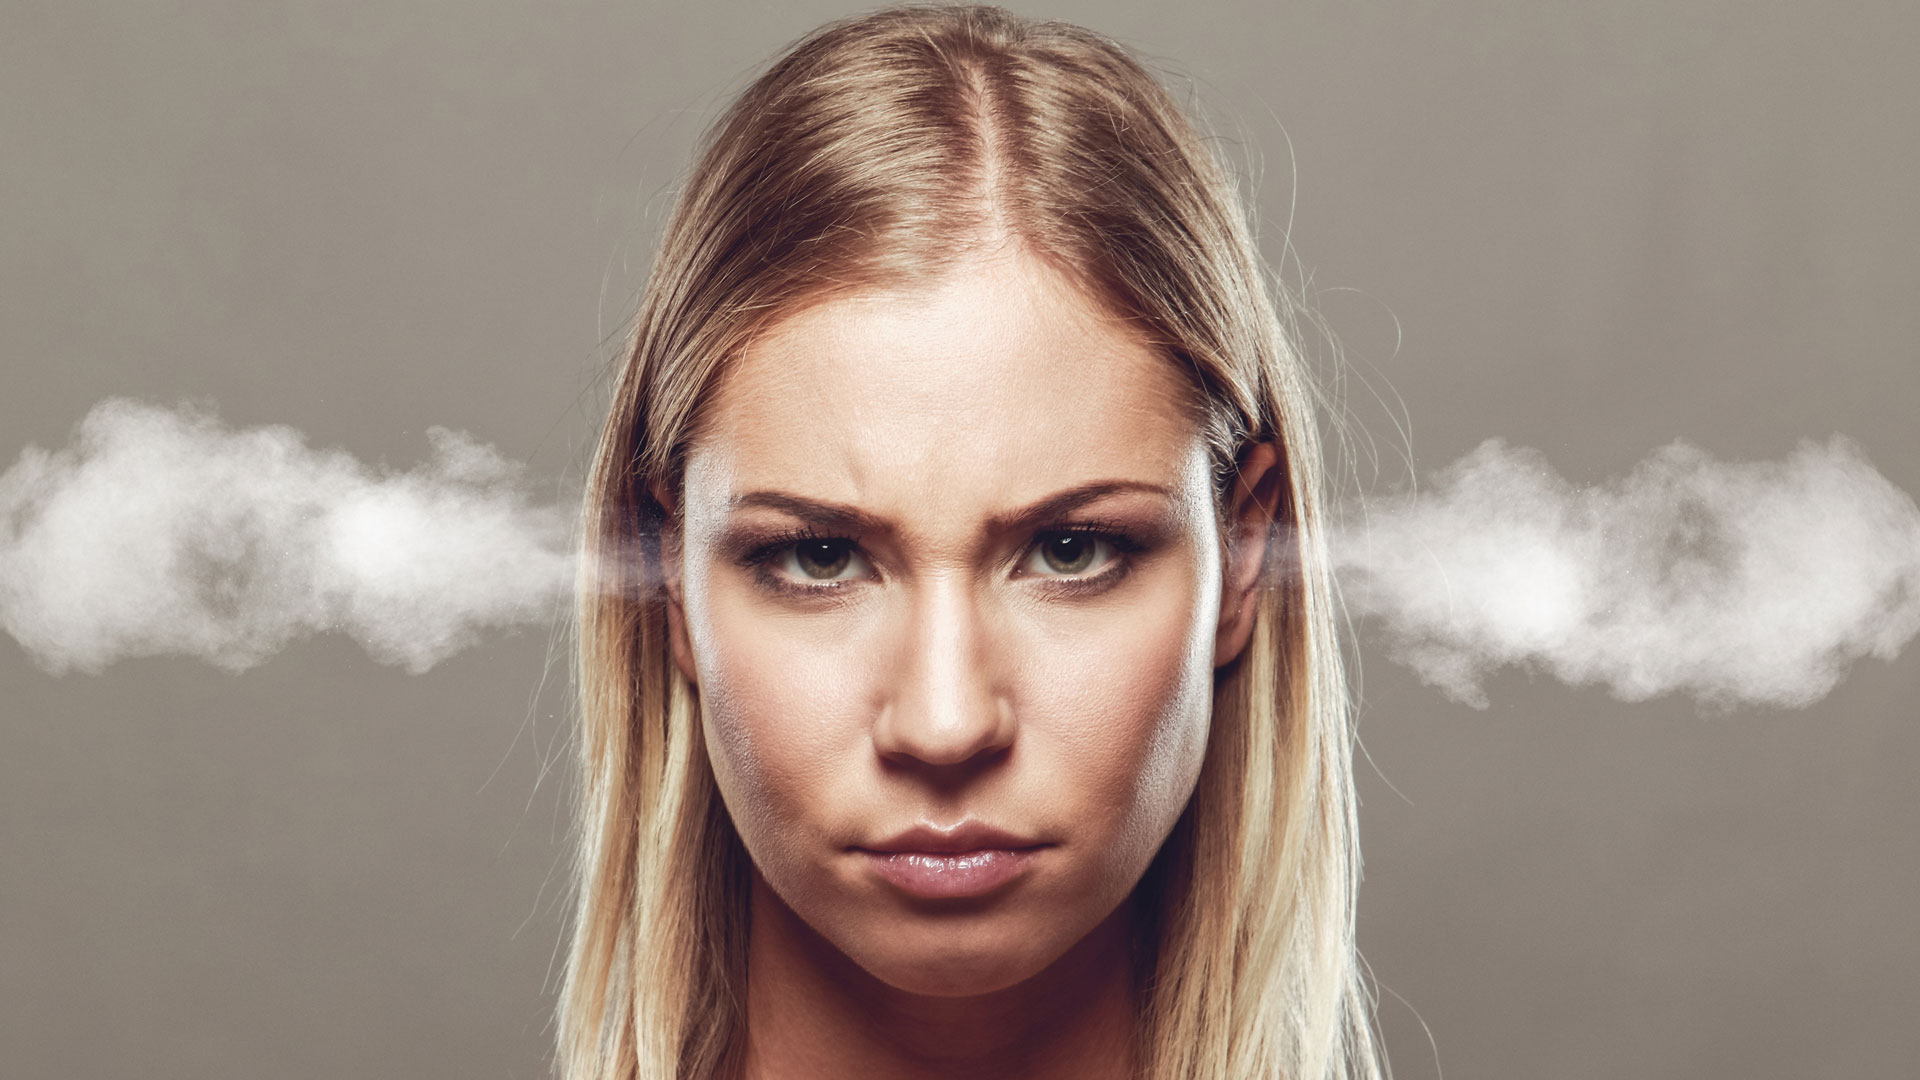 Woman with steam coming out her ears